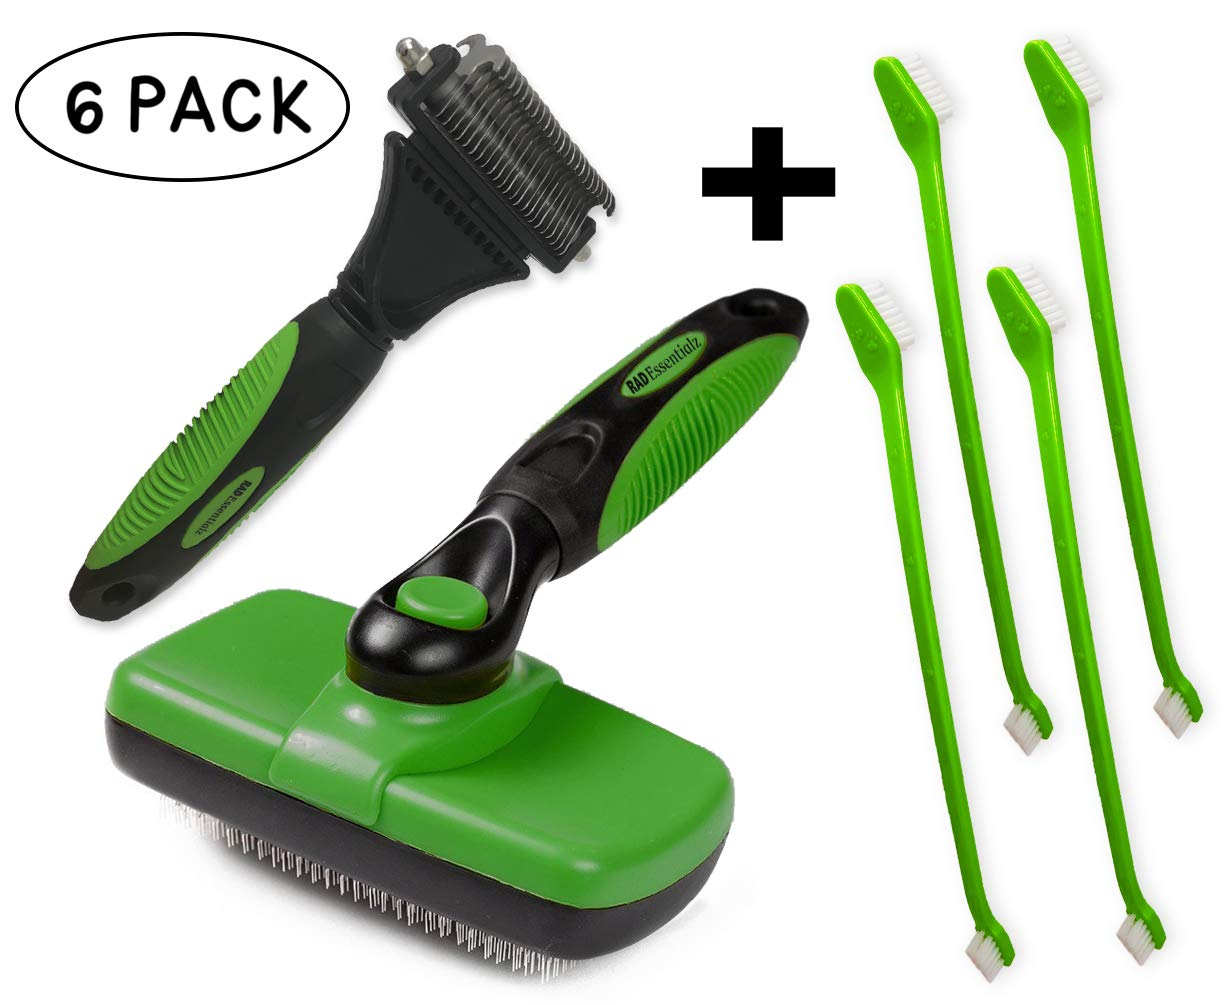 Rad Essentialz Slicker Brush and 2 Sided Undercoat Rake for Dogs & Cats - Pet Grooming Tool - Safe Dematting Comb to Remove Tangles & Mats - Gently Remove Loose Undercoat by Rad Essentialz